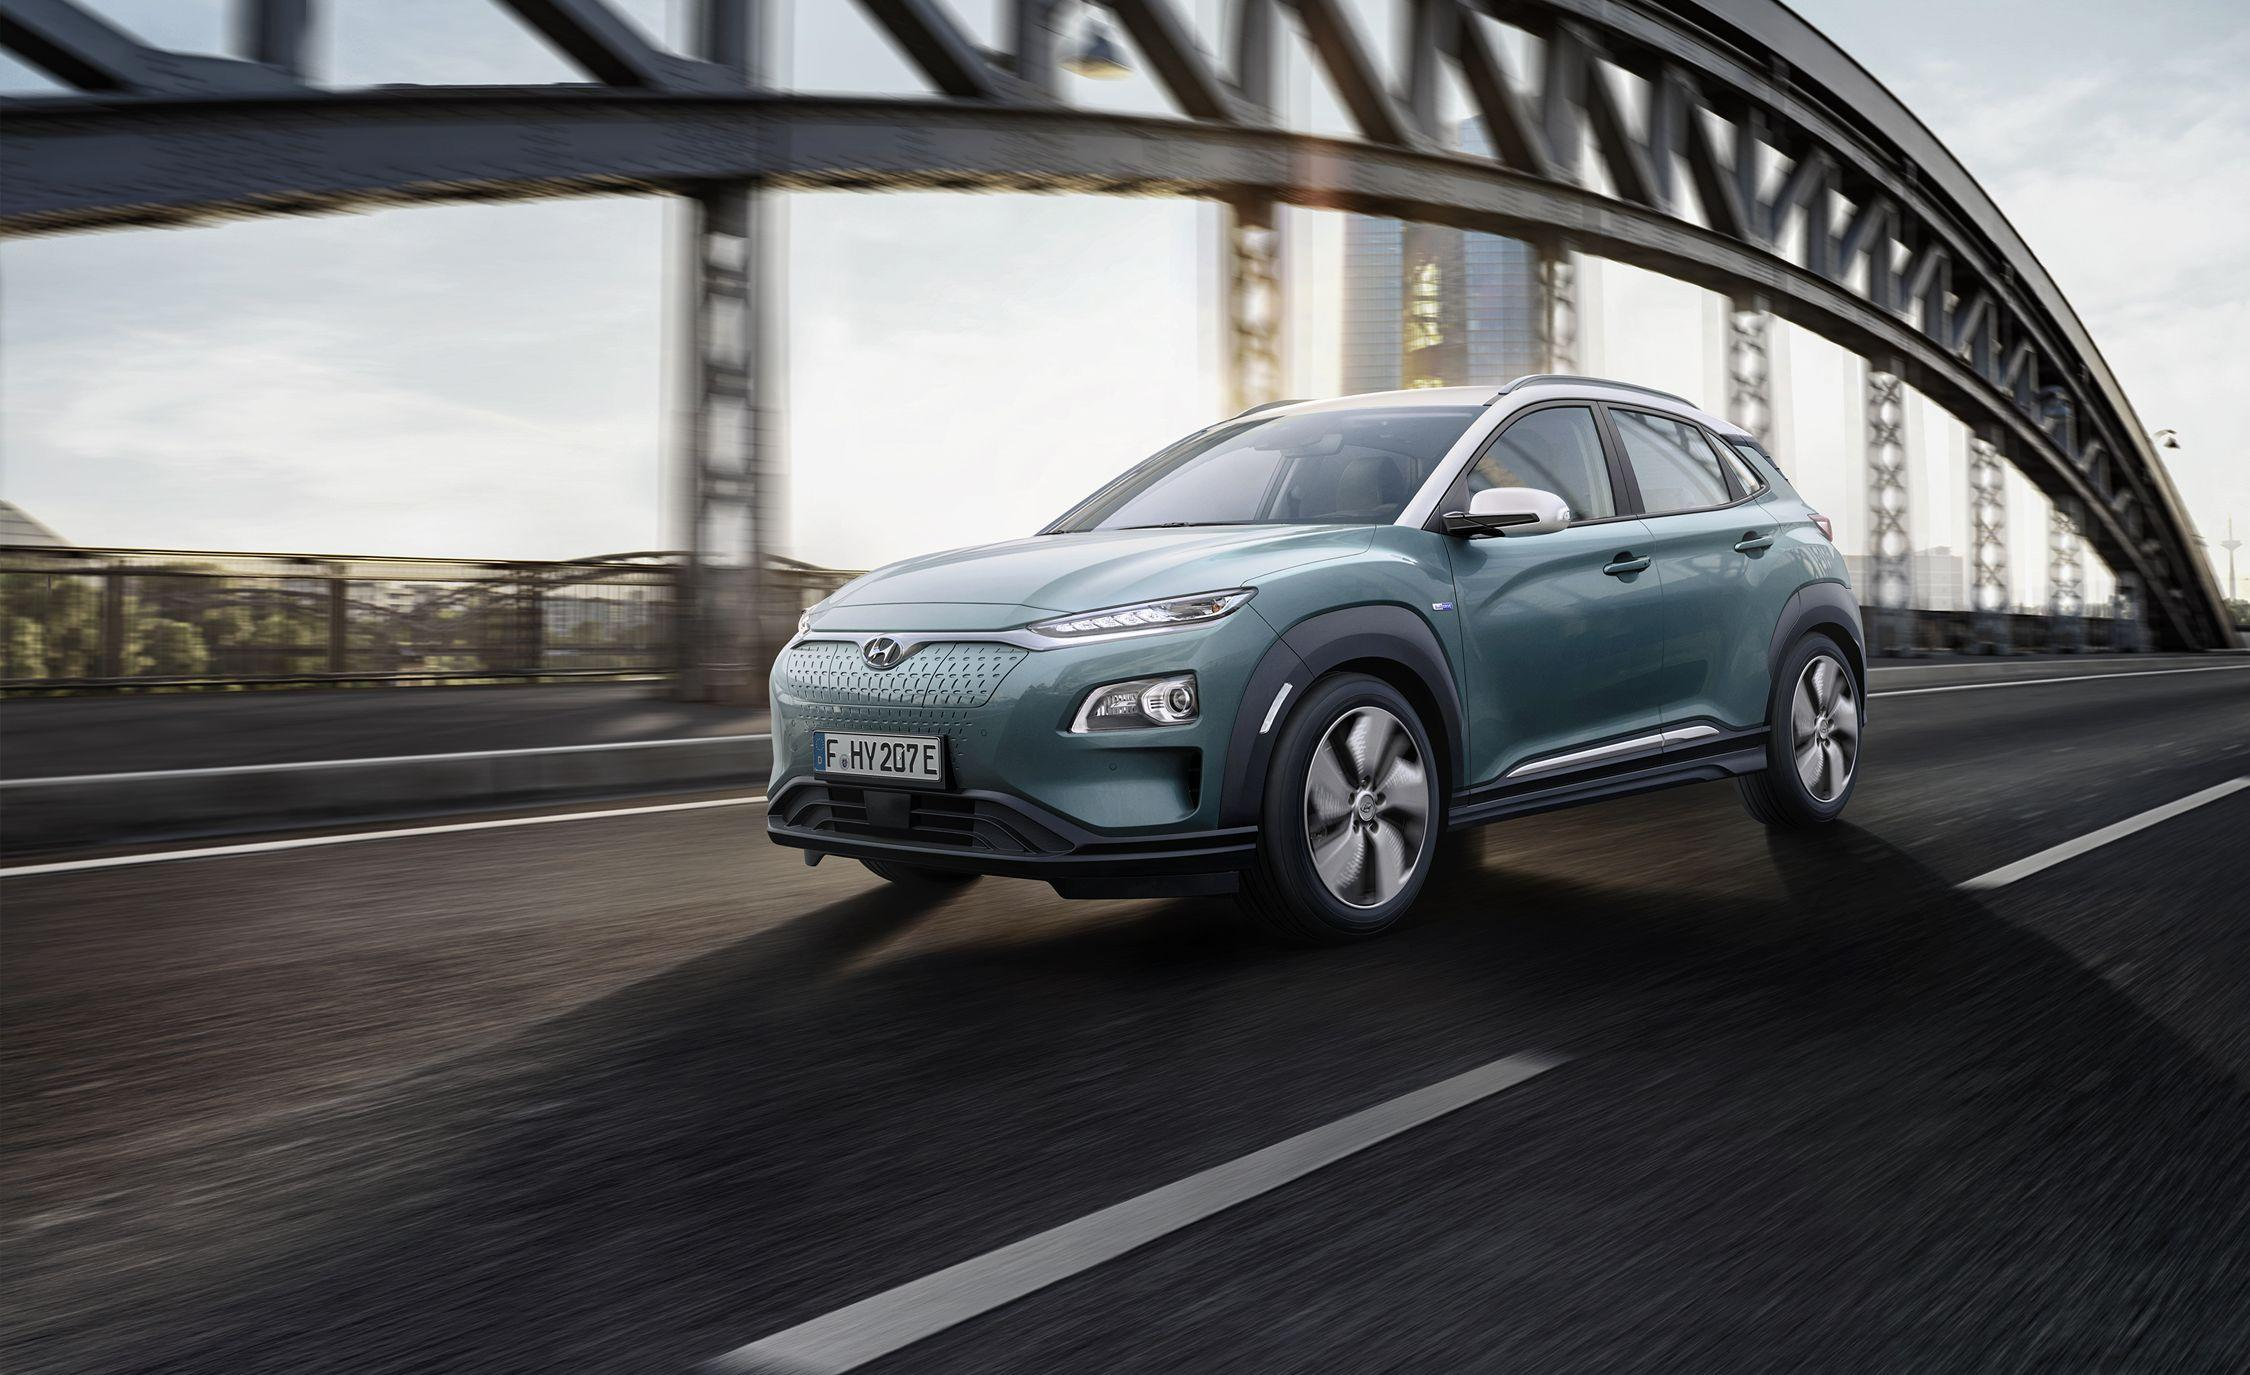 2018 Hyundai Kona Photos and Info